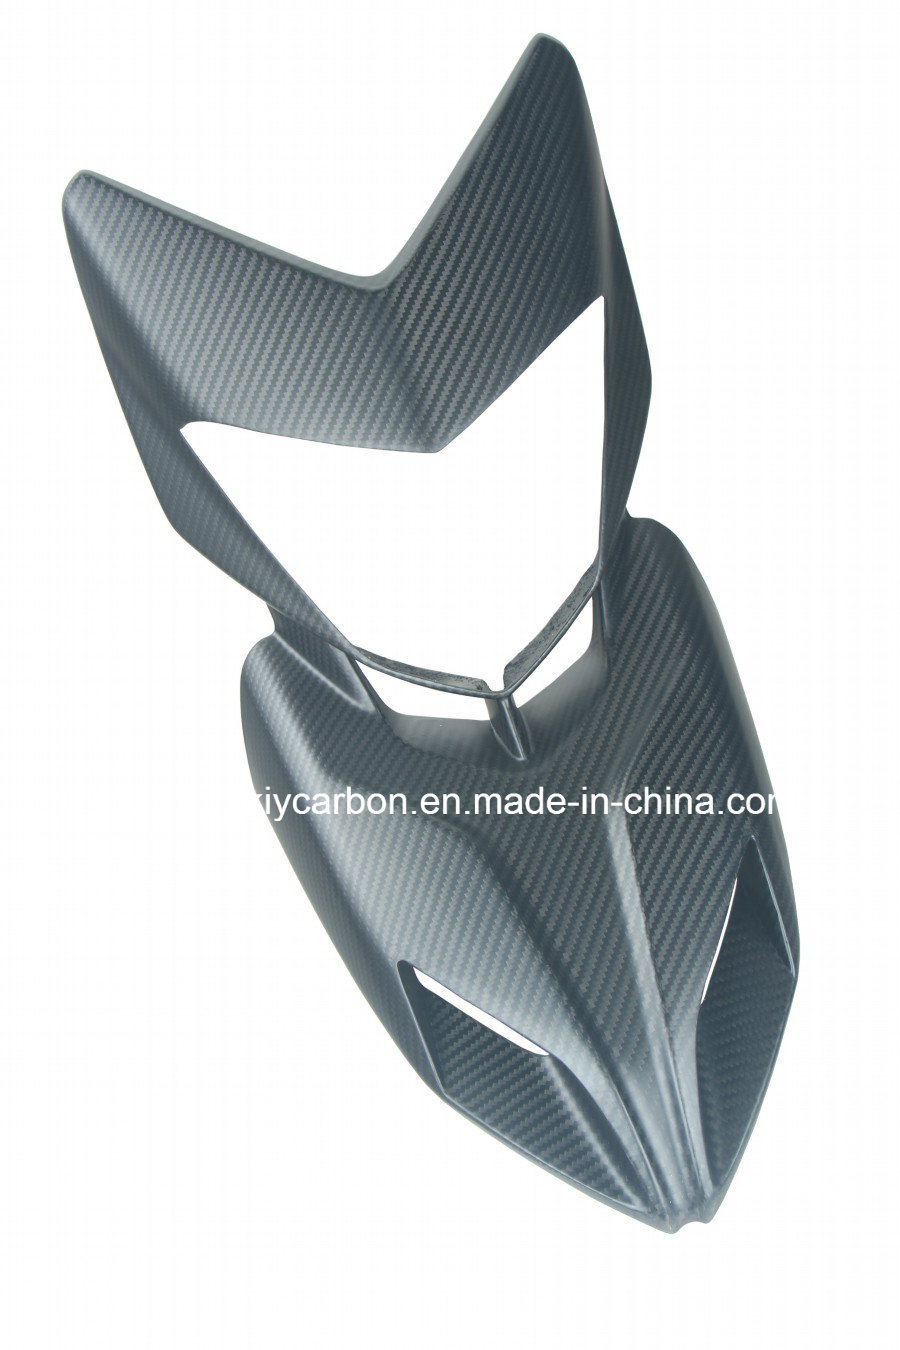 Motorcycle Carbon Part Front Fairing for Ducati Hypermotard